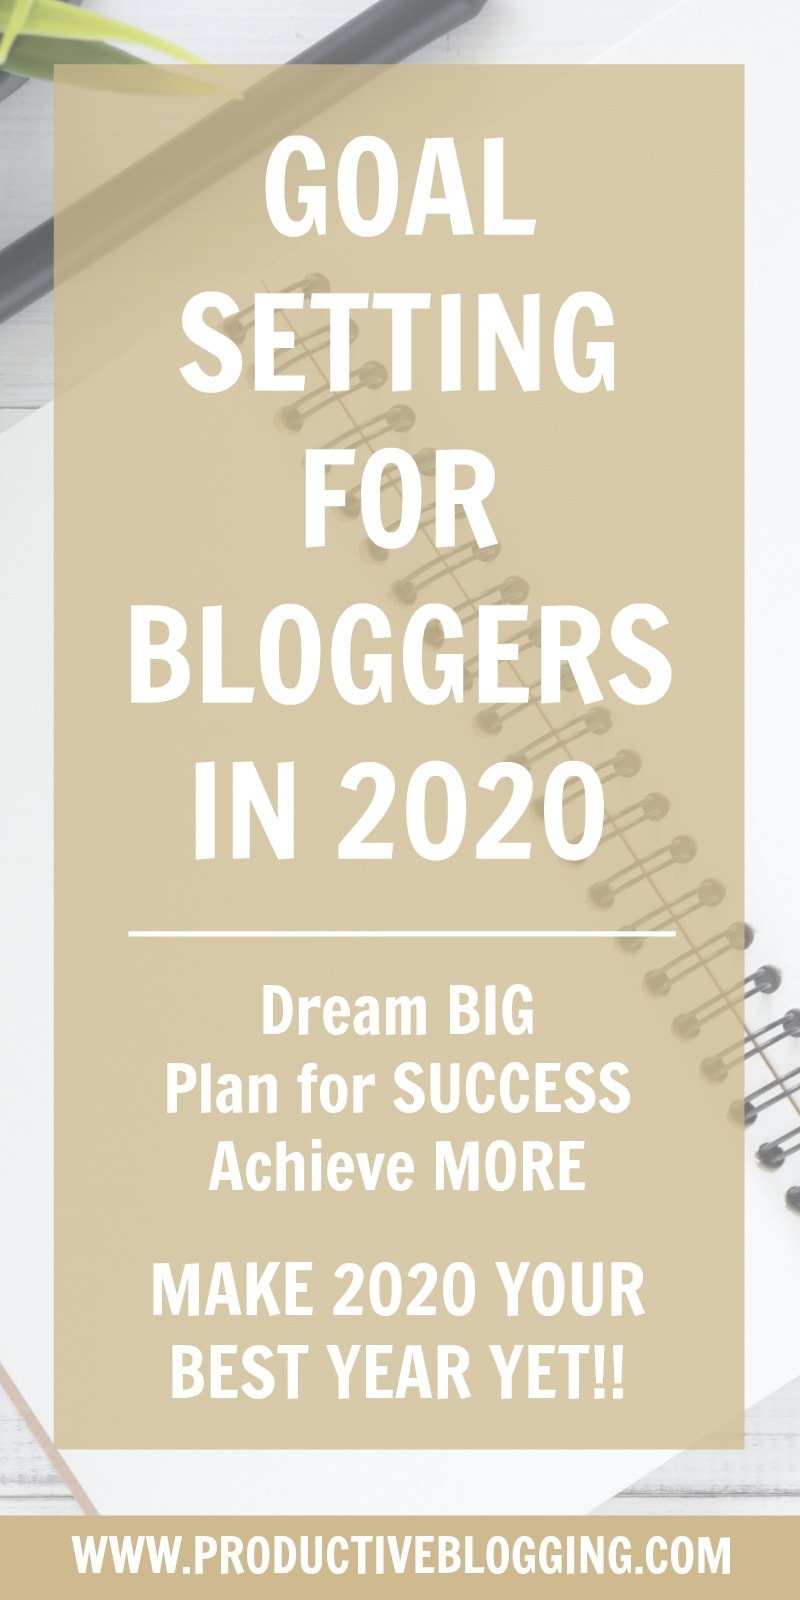 Want to have your best year ever in 2020? Don't leave it to chance. Read my guide to goal setting for bloggers in 2020, dream big and achieve those dreams! #goals #dreams #2020 #2020goals #goalsetting #goalsetting2020 #2020dreams #newyear #newyears2020 #newyearplanning #newyeargoals #2020planning #2020planner #2020plans #blogginggoals #bloggingdreams #blogplanner #blogplanning #blogplanning2020 #blogplanner2020